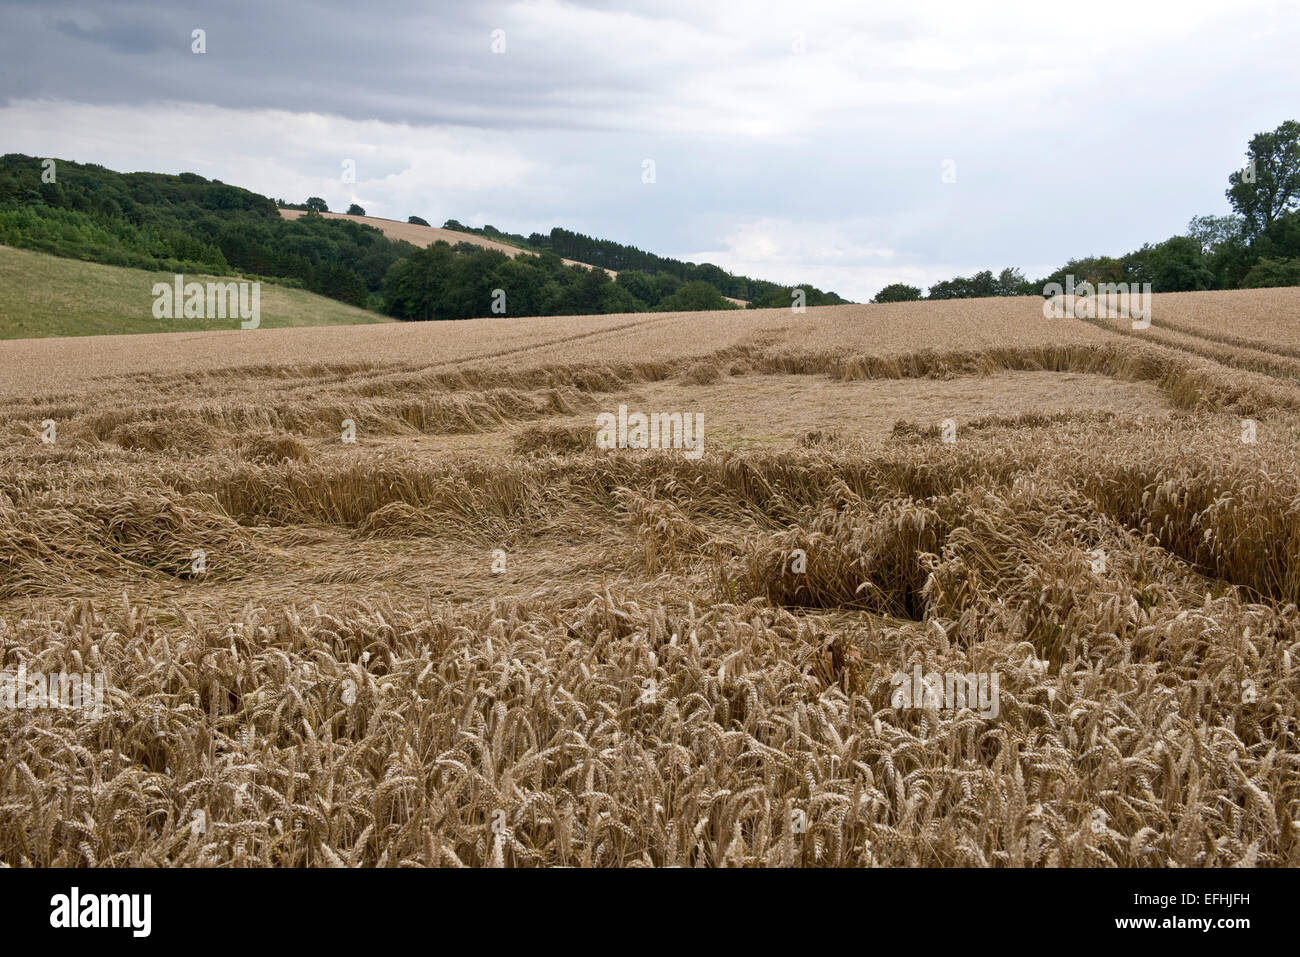 A ripe wheat crop flattened or lodged by a storm earlier in the season, Berkshire, July - Stock Image